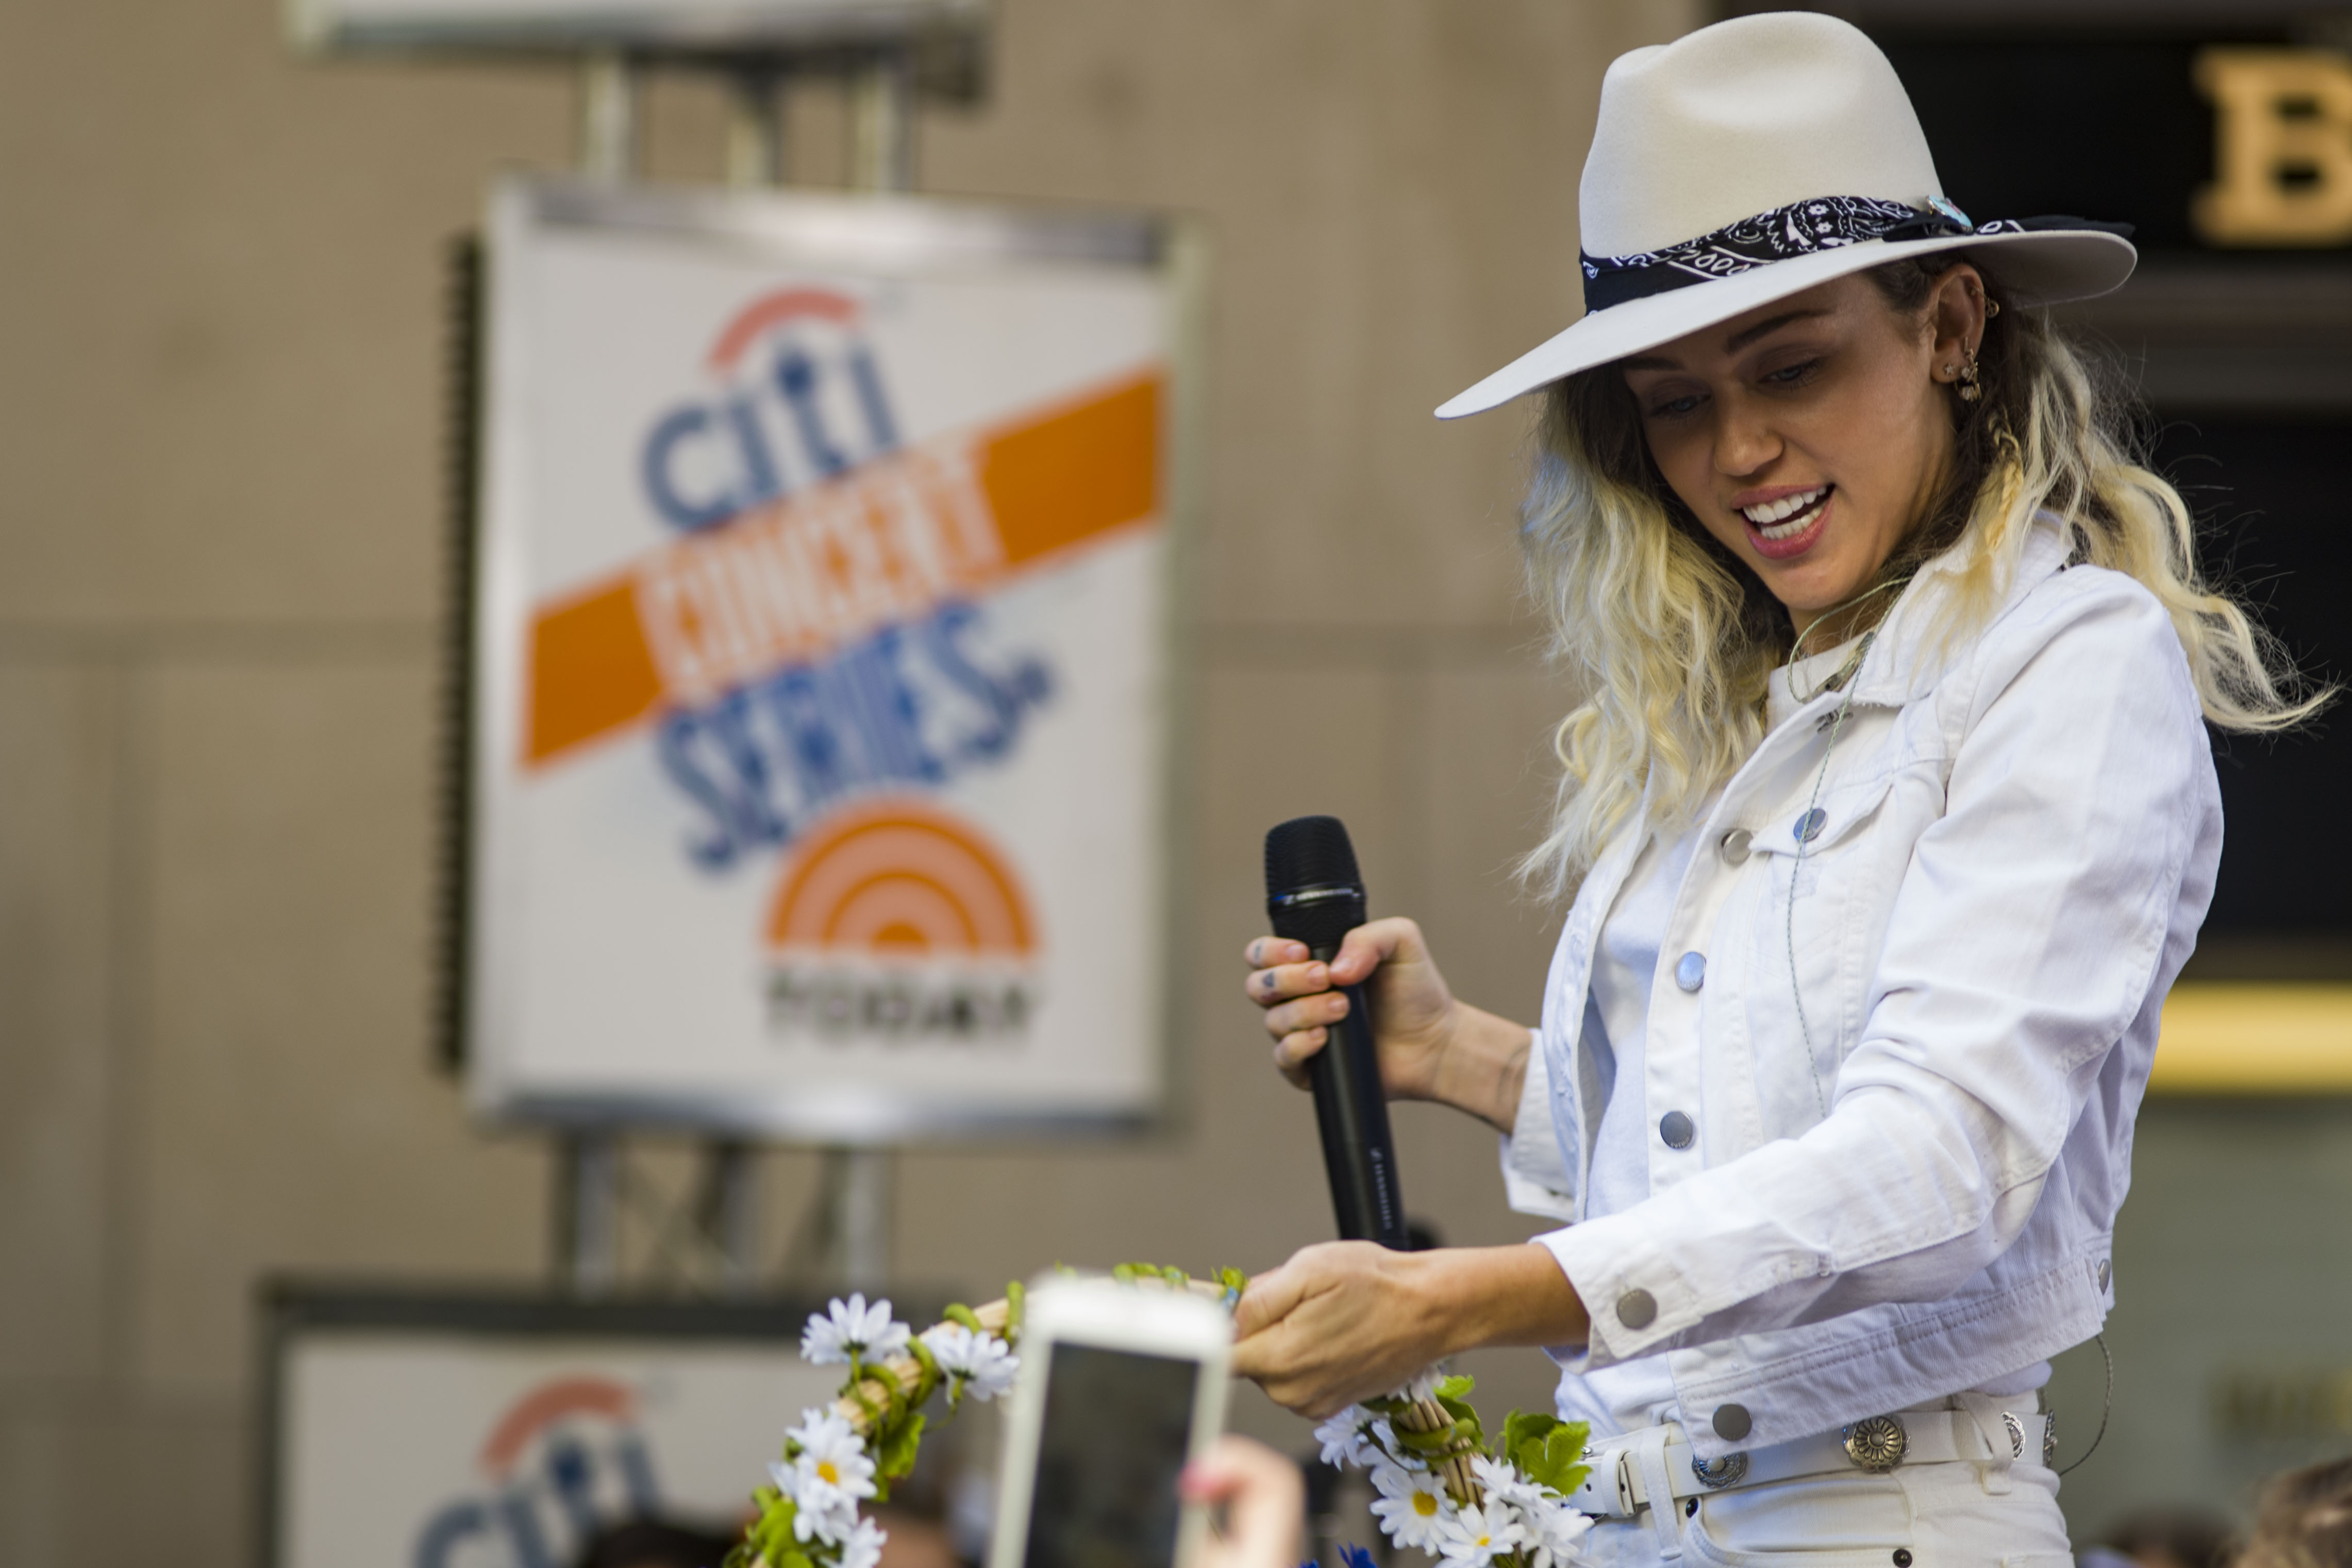 170526-N-EO381-074 NEW YORK (May 26, 2017) Ð Miley Cyrus performs on the Today Show in downtown Manhattan for Fleet Week New York (FWNY). FWNY, now in is 29th year, is the cityÕs time honored celebration of the sea services. It is an unparalleled opportunity for the citizens of New York and the surrounding tri-state area to meet Sailors, Marines and Coast Guardsmen, as well as witness firsthand the latest capabilities of todayÕs maritime services. (U.S. Navy photo by Mass Communication Specialist 3rd Class Casey J. Hopkins/Released)